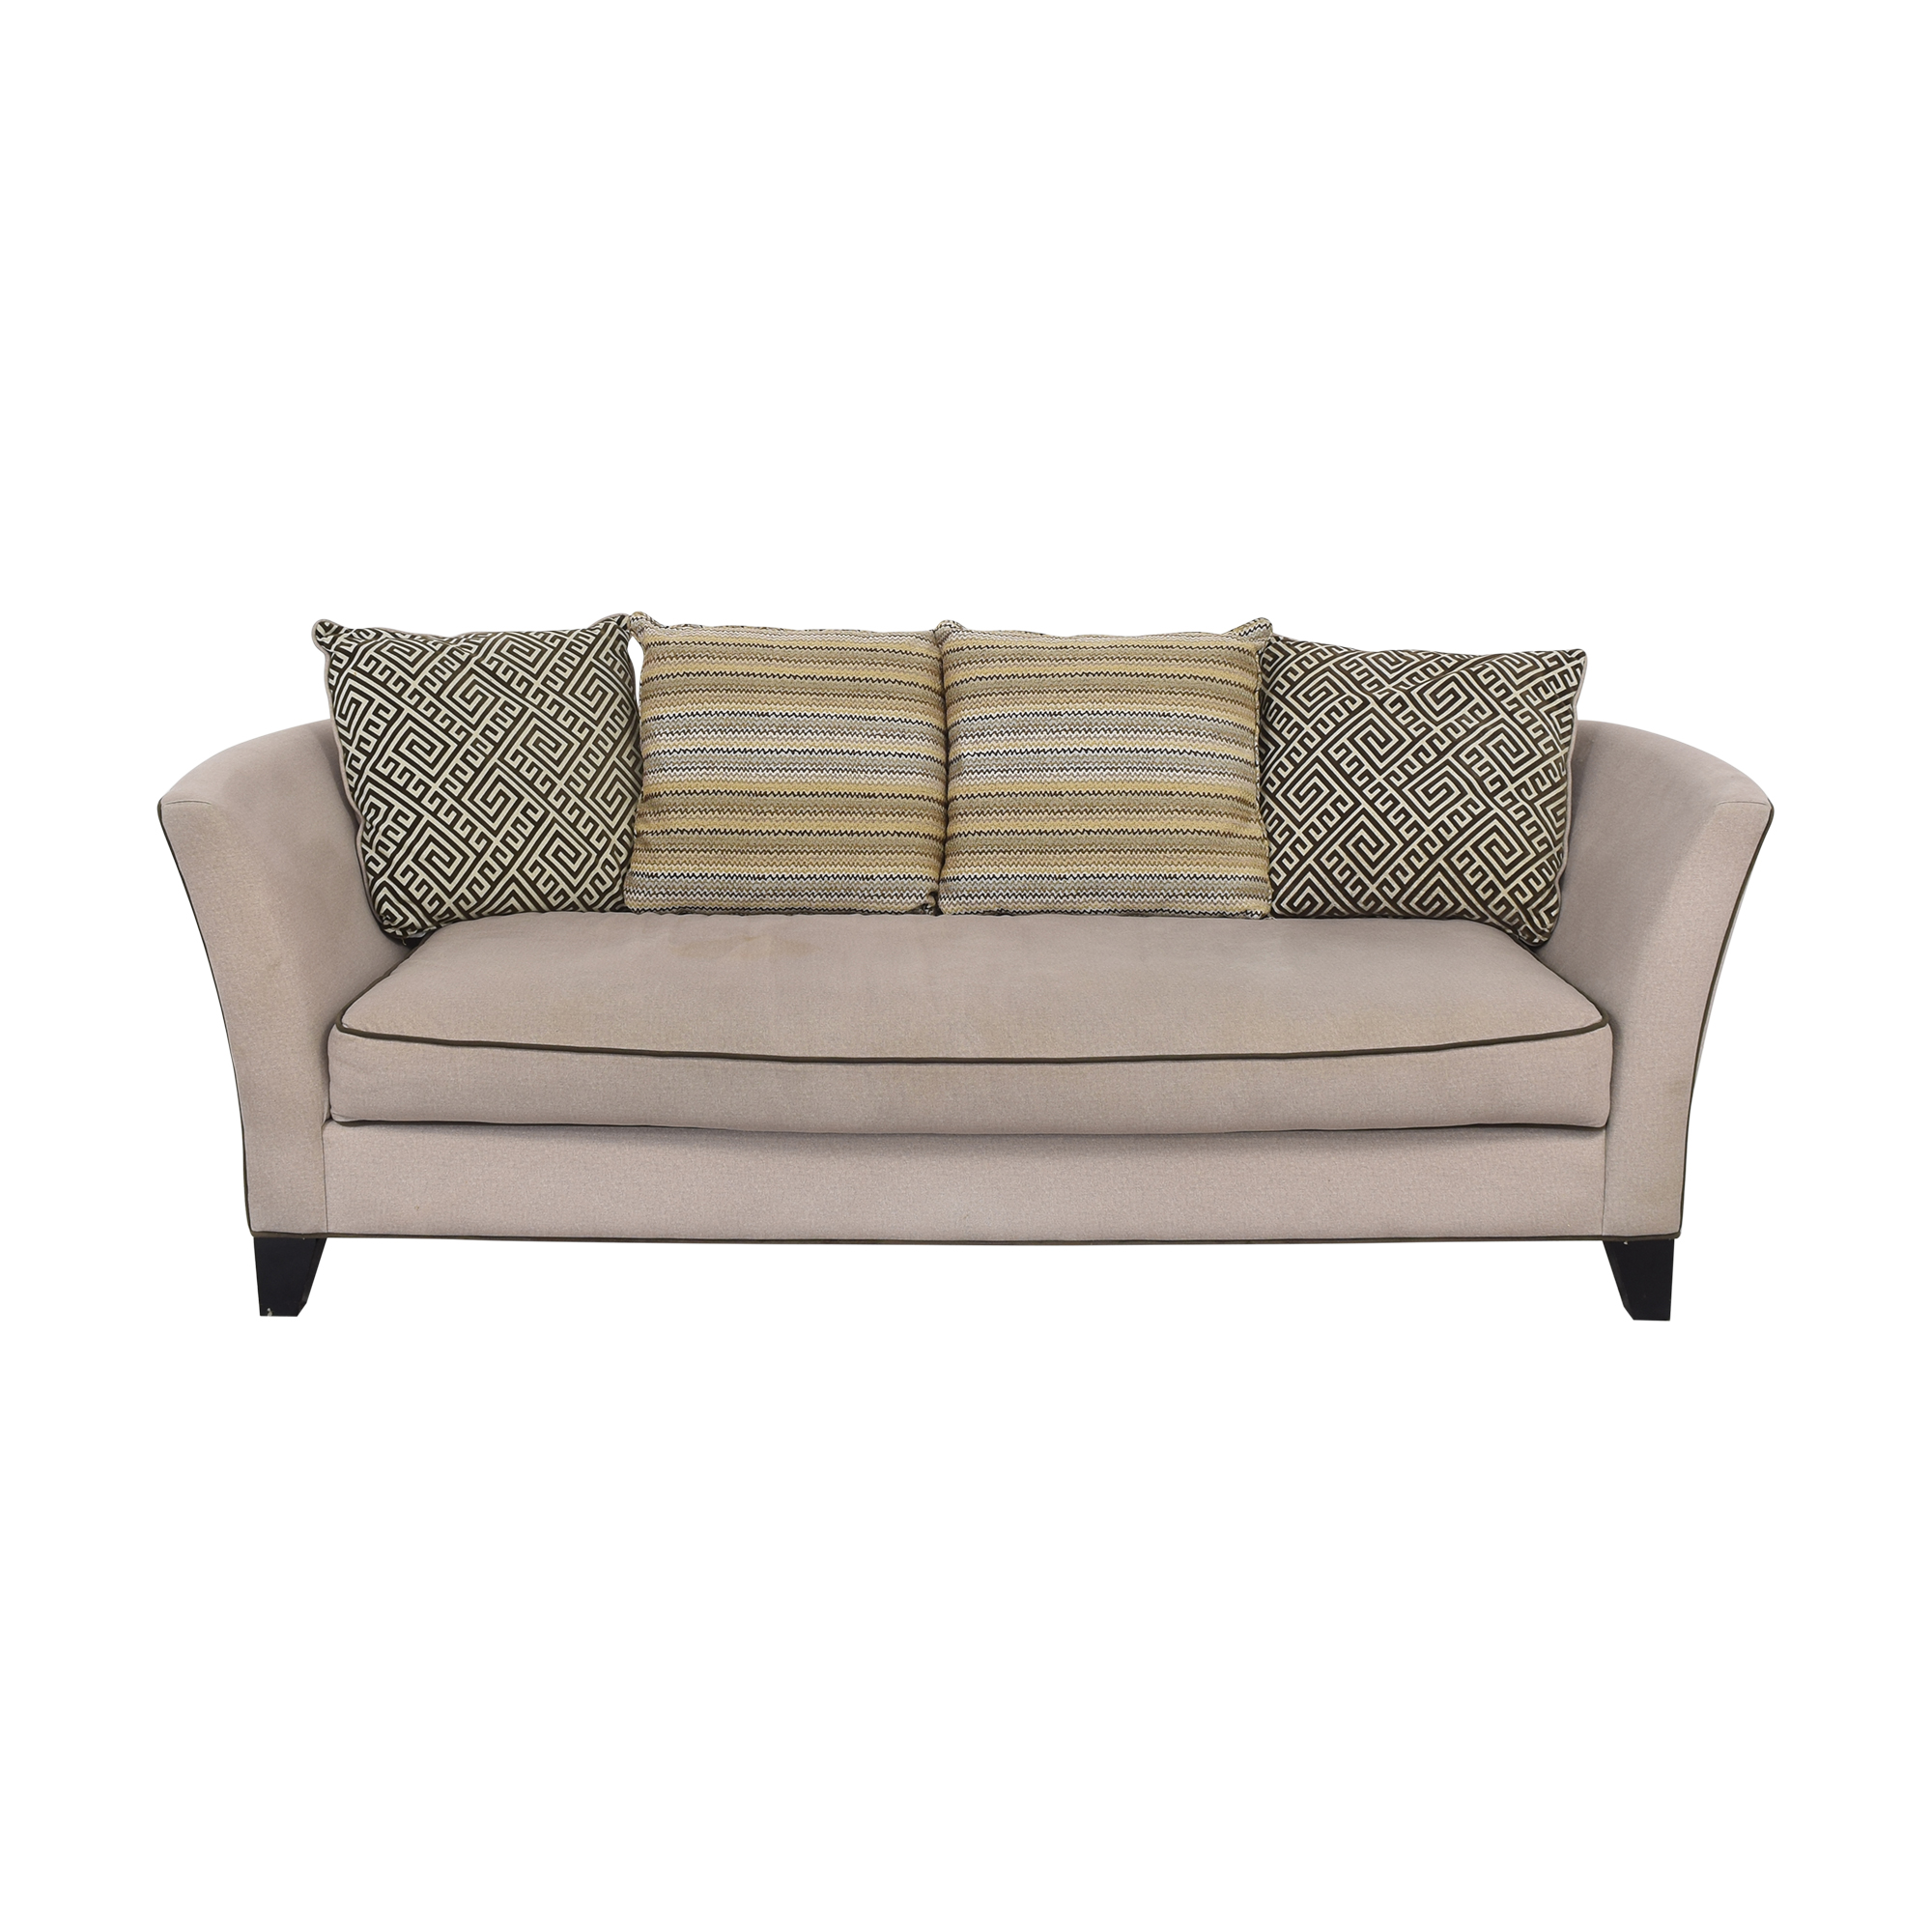 Raymour & Flanigan Raymour & Flanigan Sofa for sale